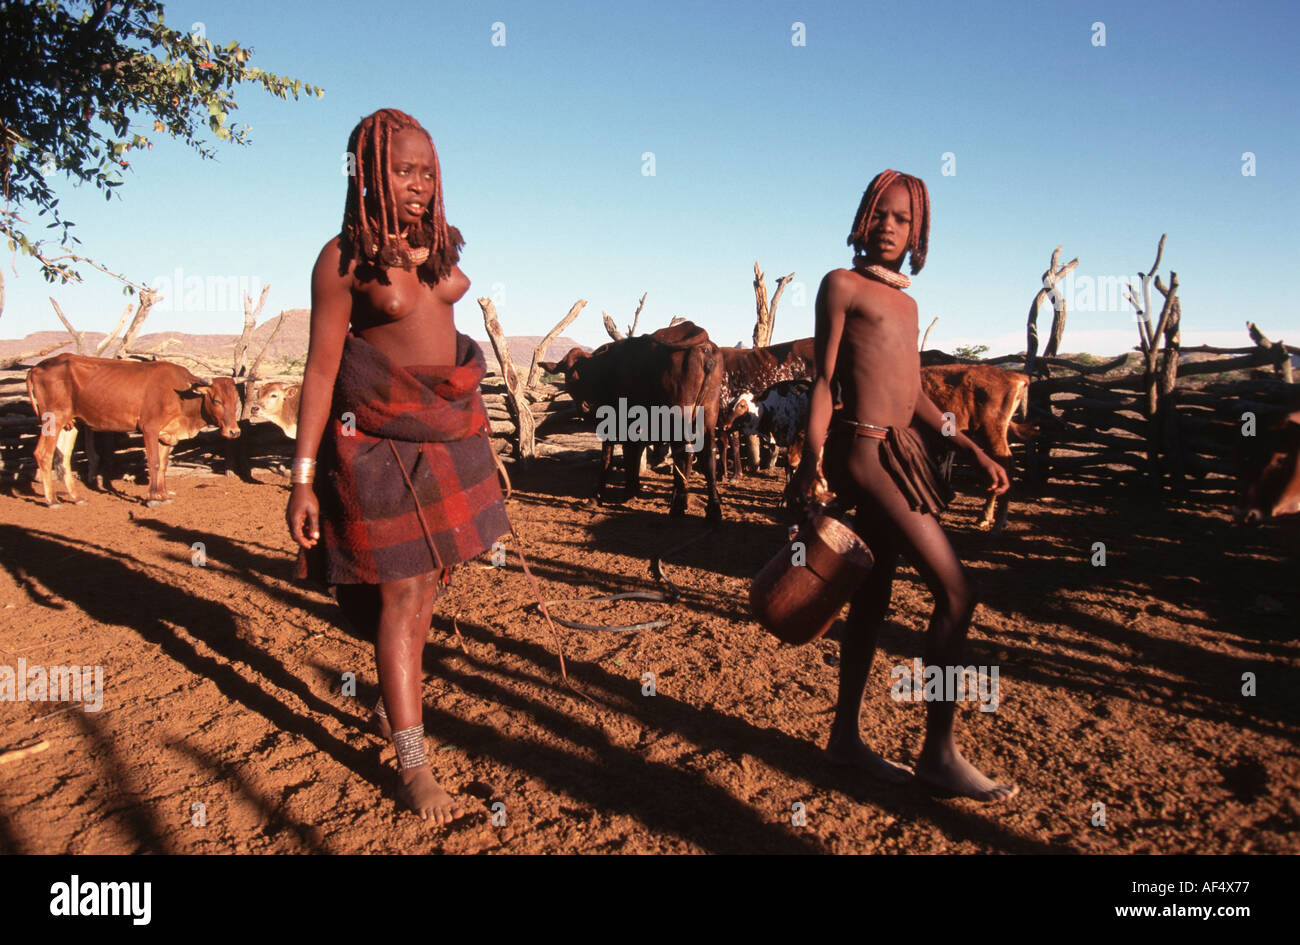 Himba in a cattle Kraal Northern Namibia - Stock Image